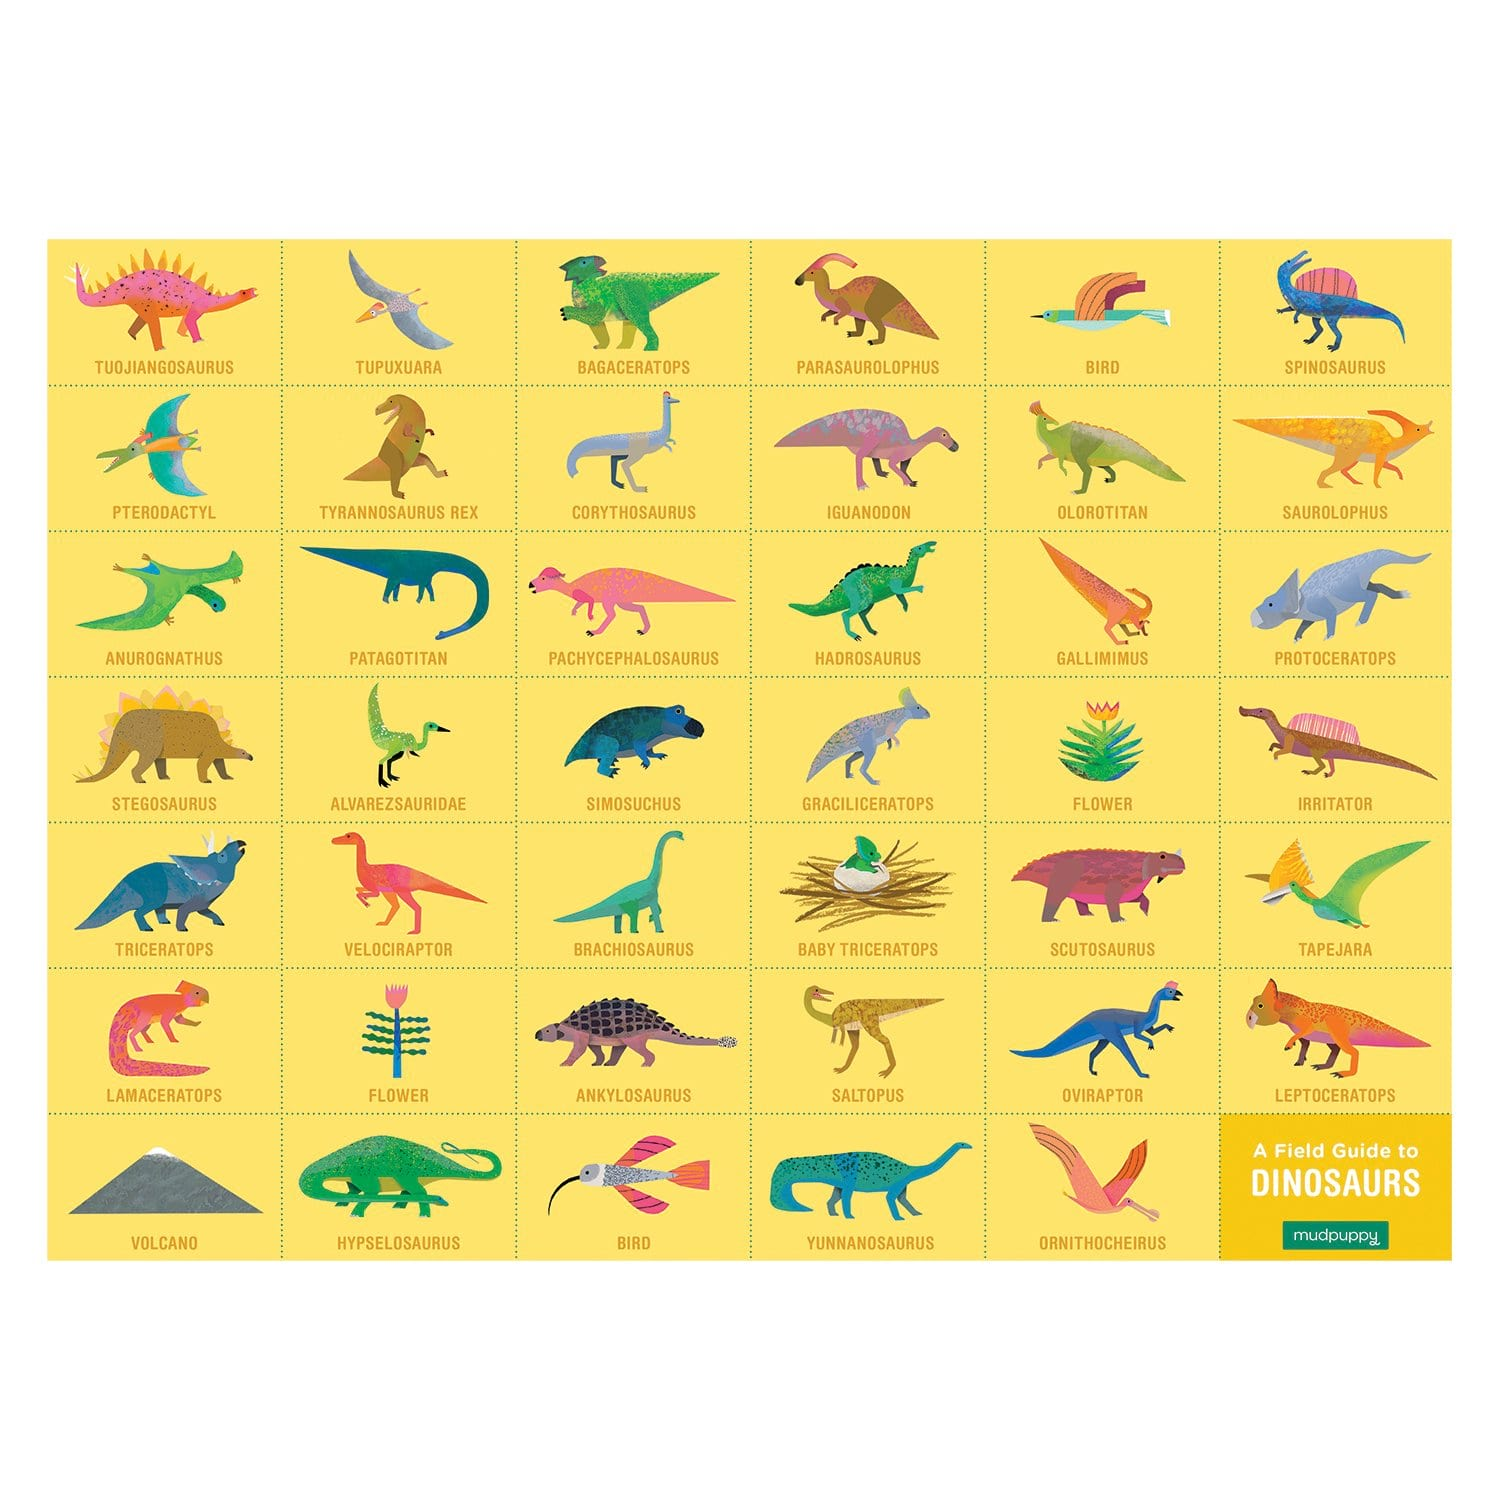 Dinosaur Search and Find Puzzle  - Villavillekula, llc - Philadelphia, PA